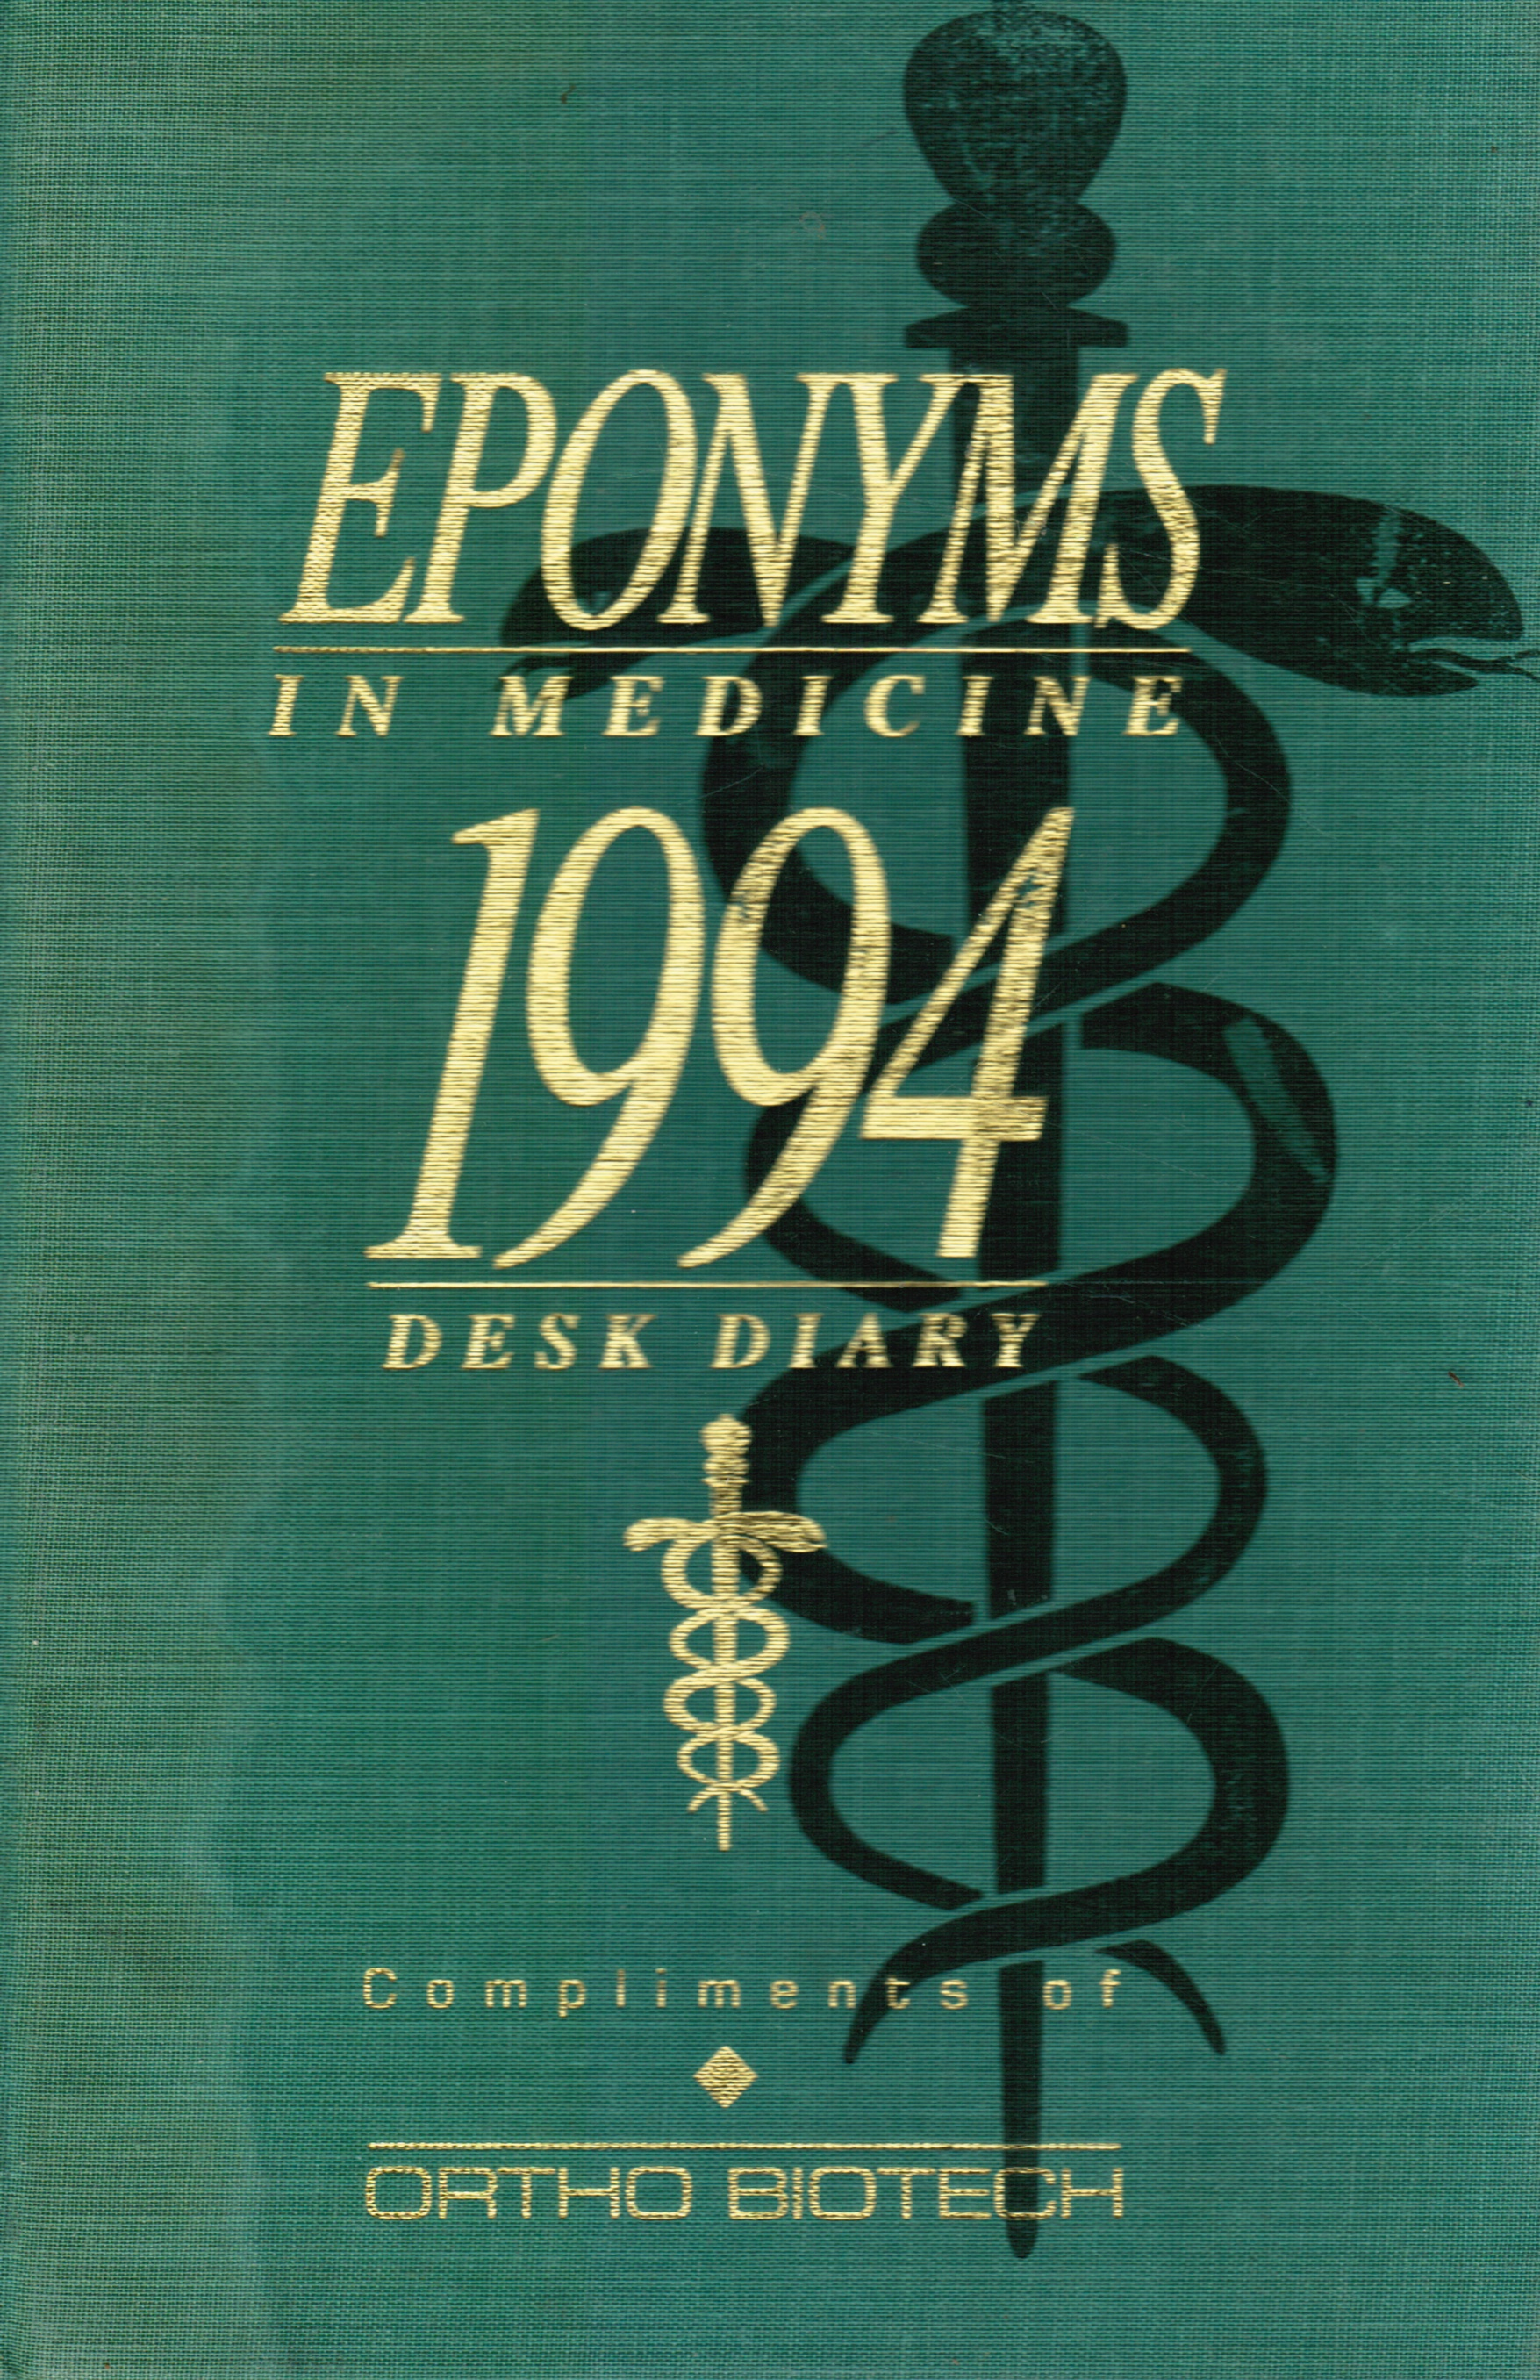 Image for Eponyms in Medicine:  1994 Desk Diary